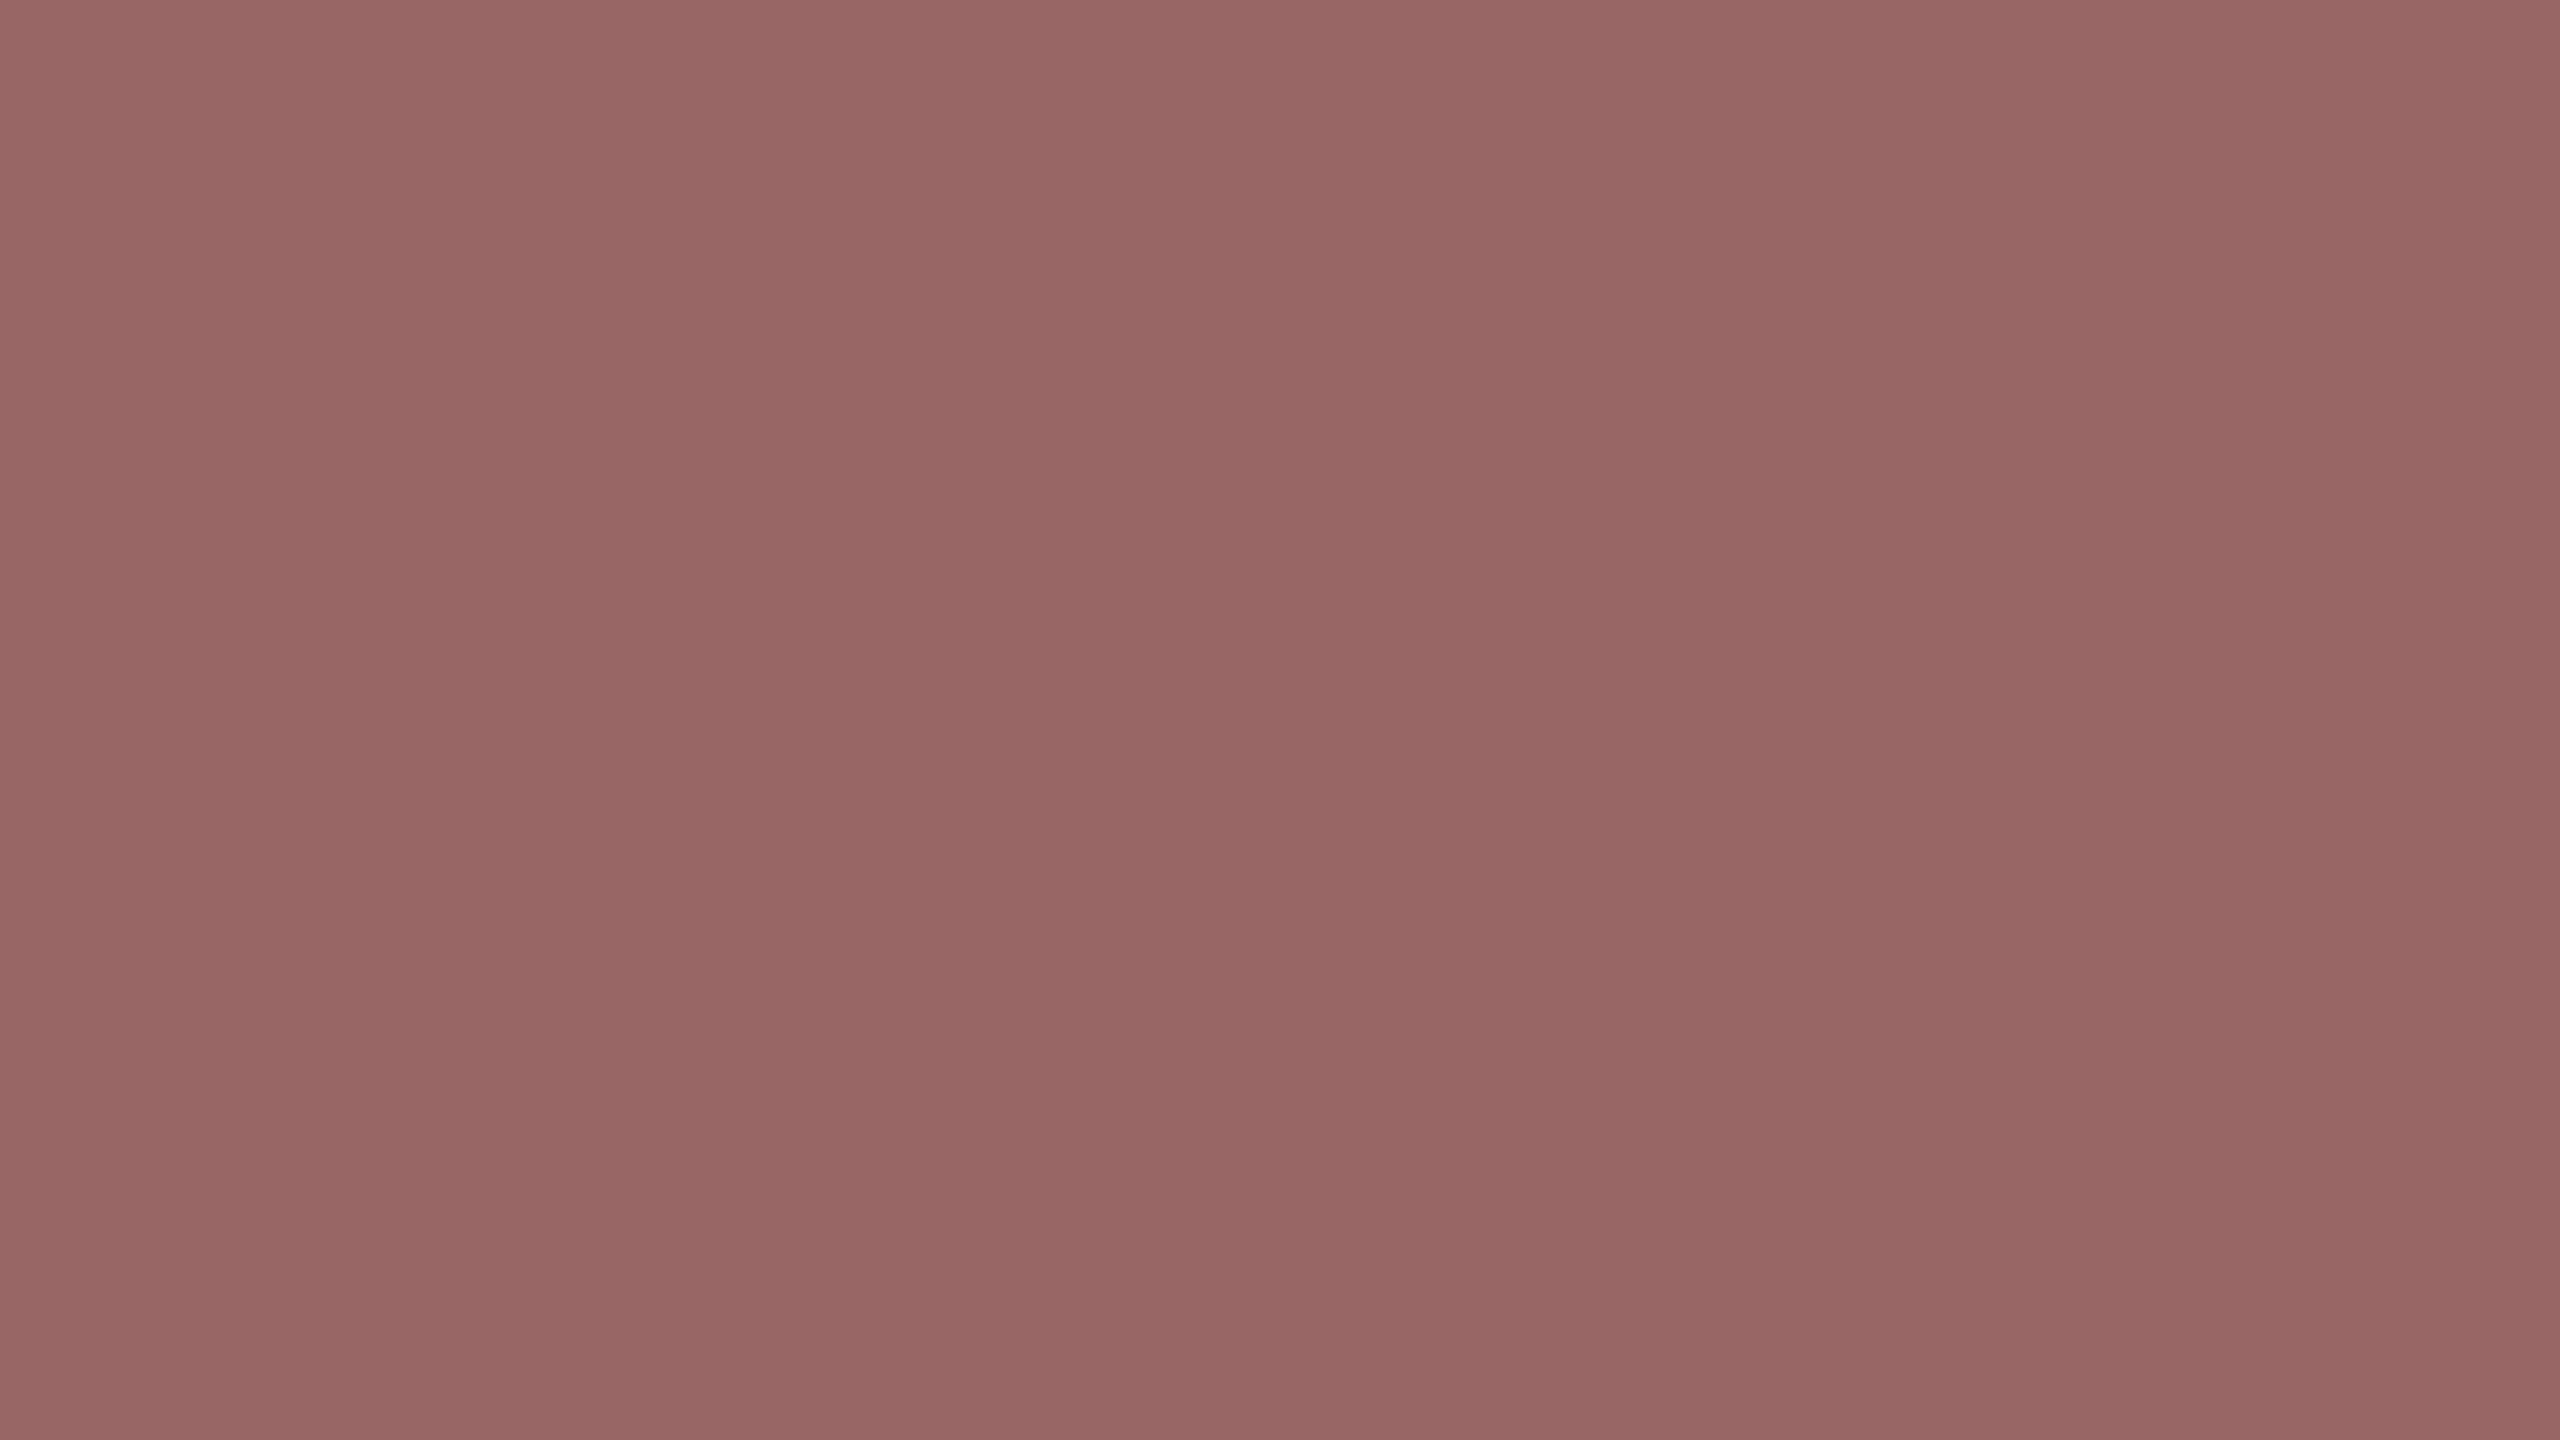 2560x1440 Copper Rose Solid Color Background